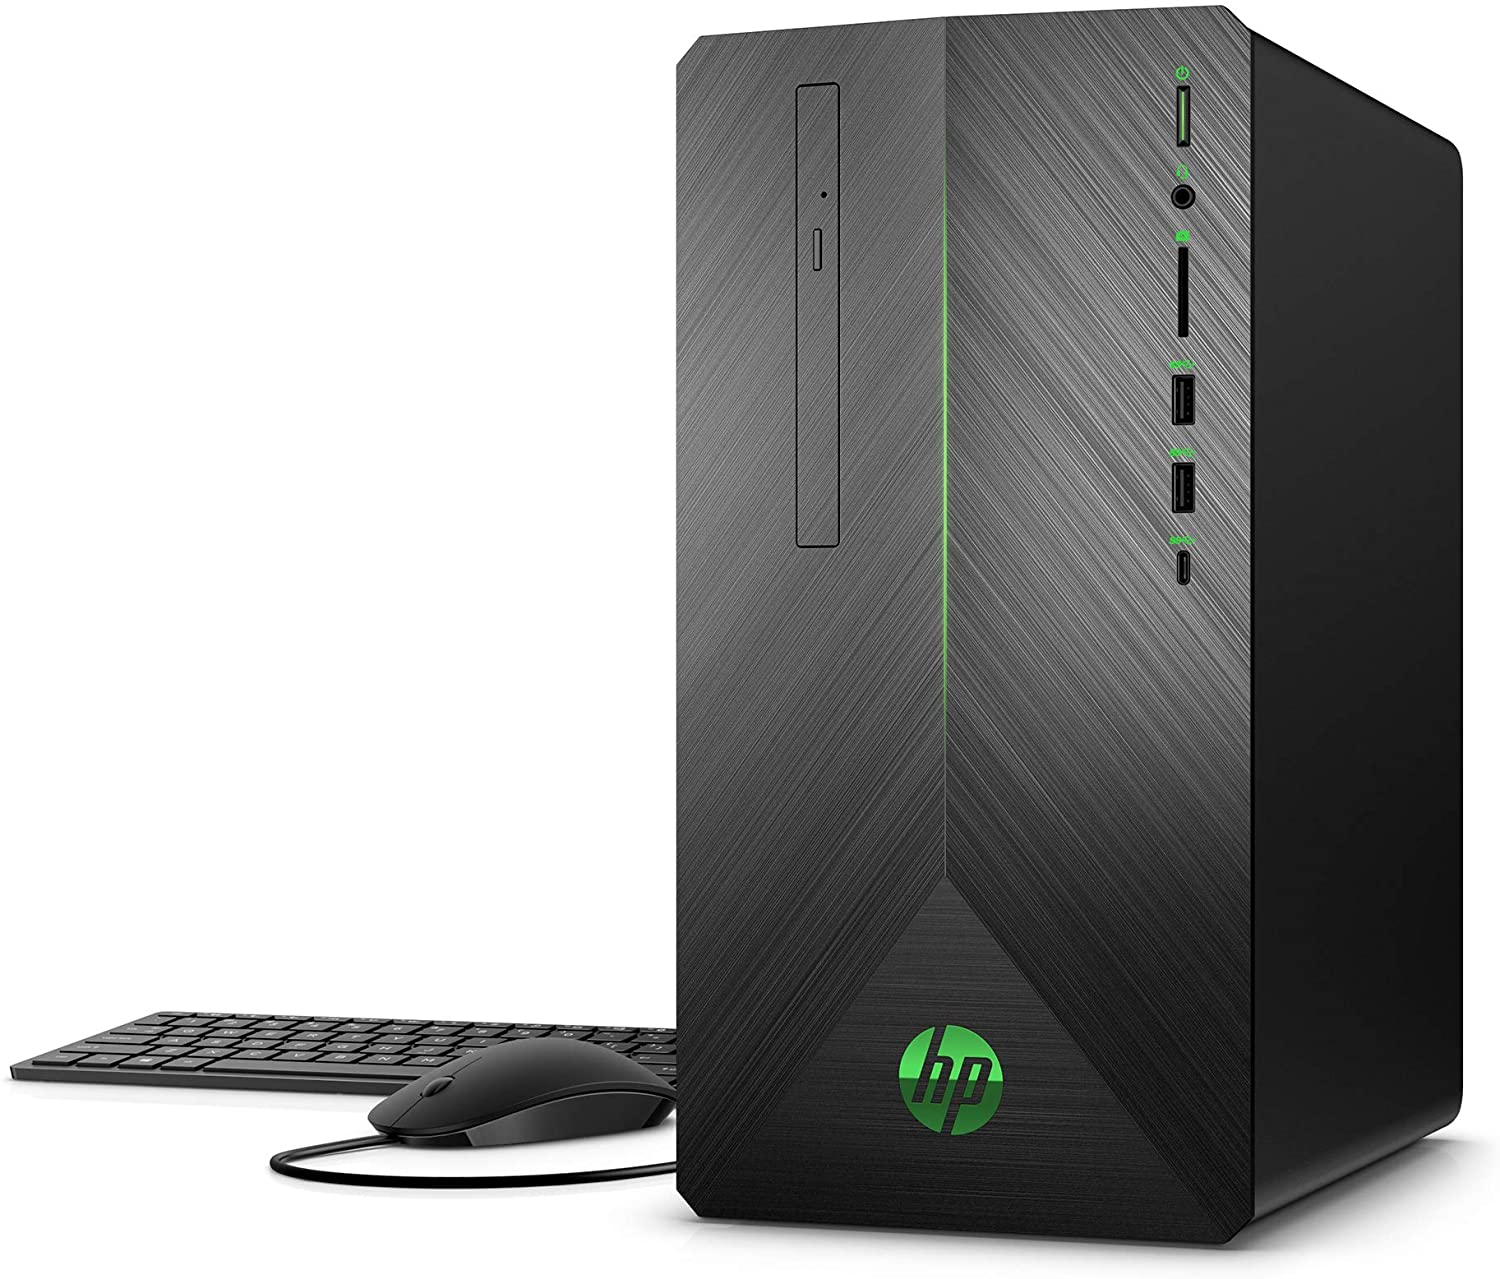 Image of an HP Pavillon Desktop PC